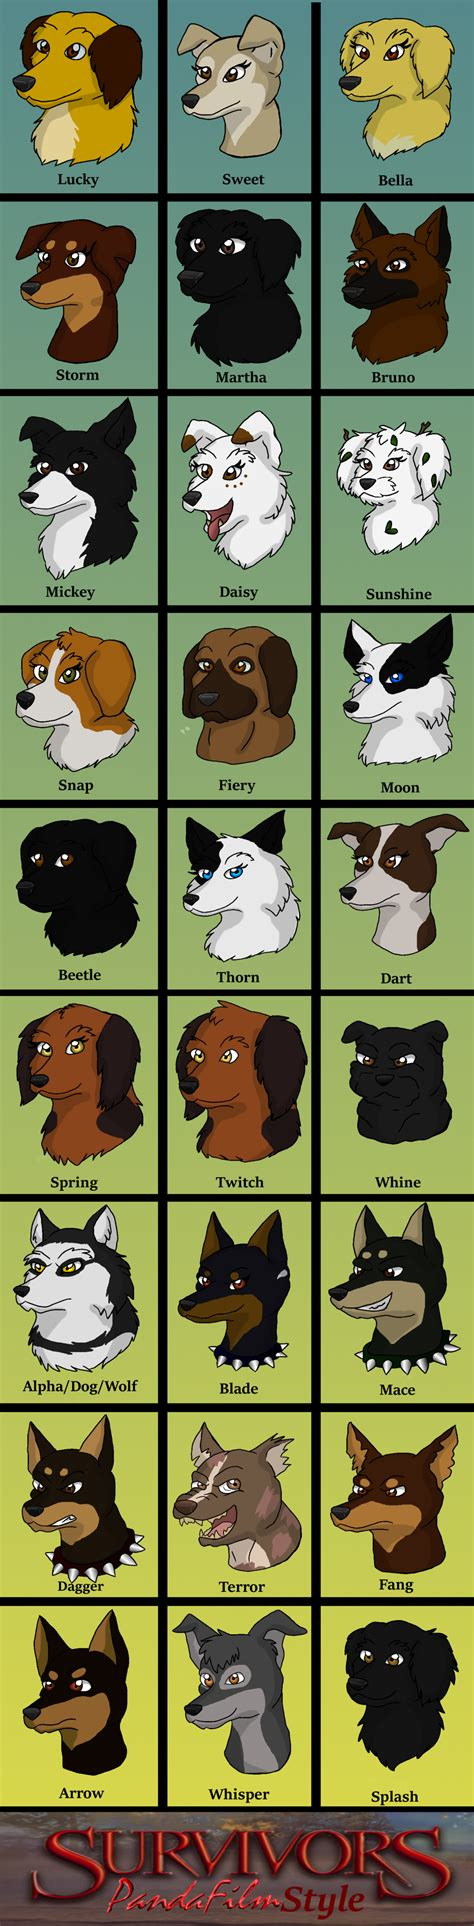 survivors dogs survivors dogs series 1 characters by pandafilmsg on deviantart